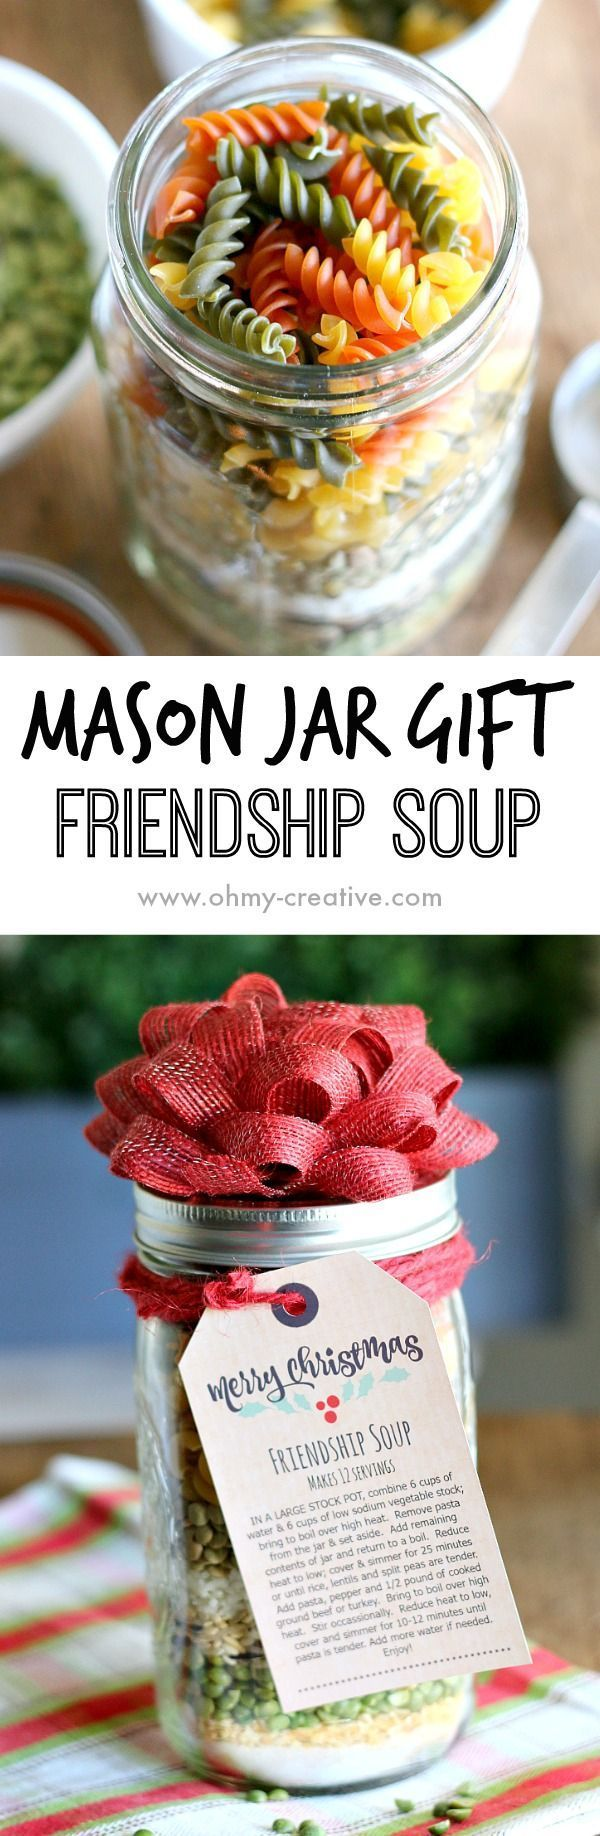 Edible gifts create the perfect personal touch for gift giving during the holiday season. This Soup in a Jar Gift makes a great gift for friends, neighbors and co-workers! Its so easy to make soup in a jar recipes - a real time saver at the holidays. This mason jar recipe makes a tasty Christmas soup! | http://OHMY-CREATIVE.COM